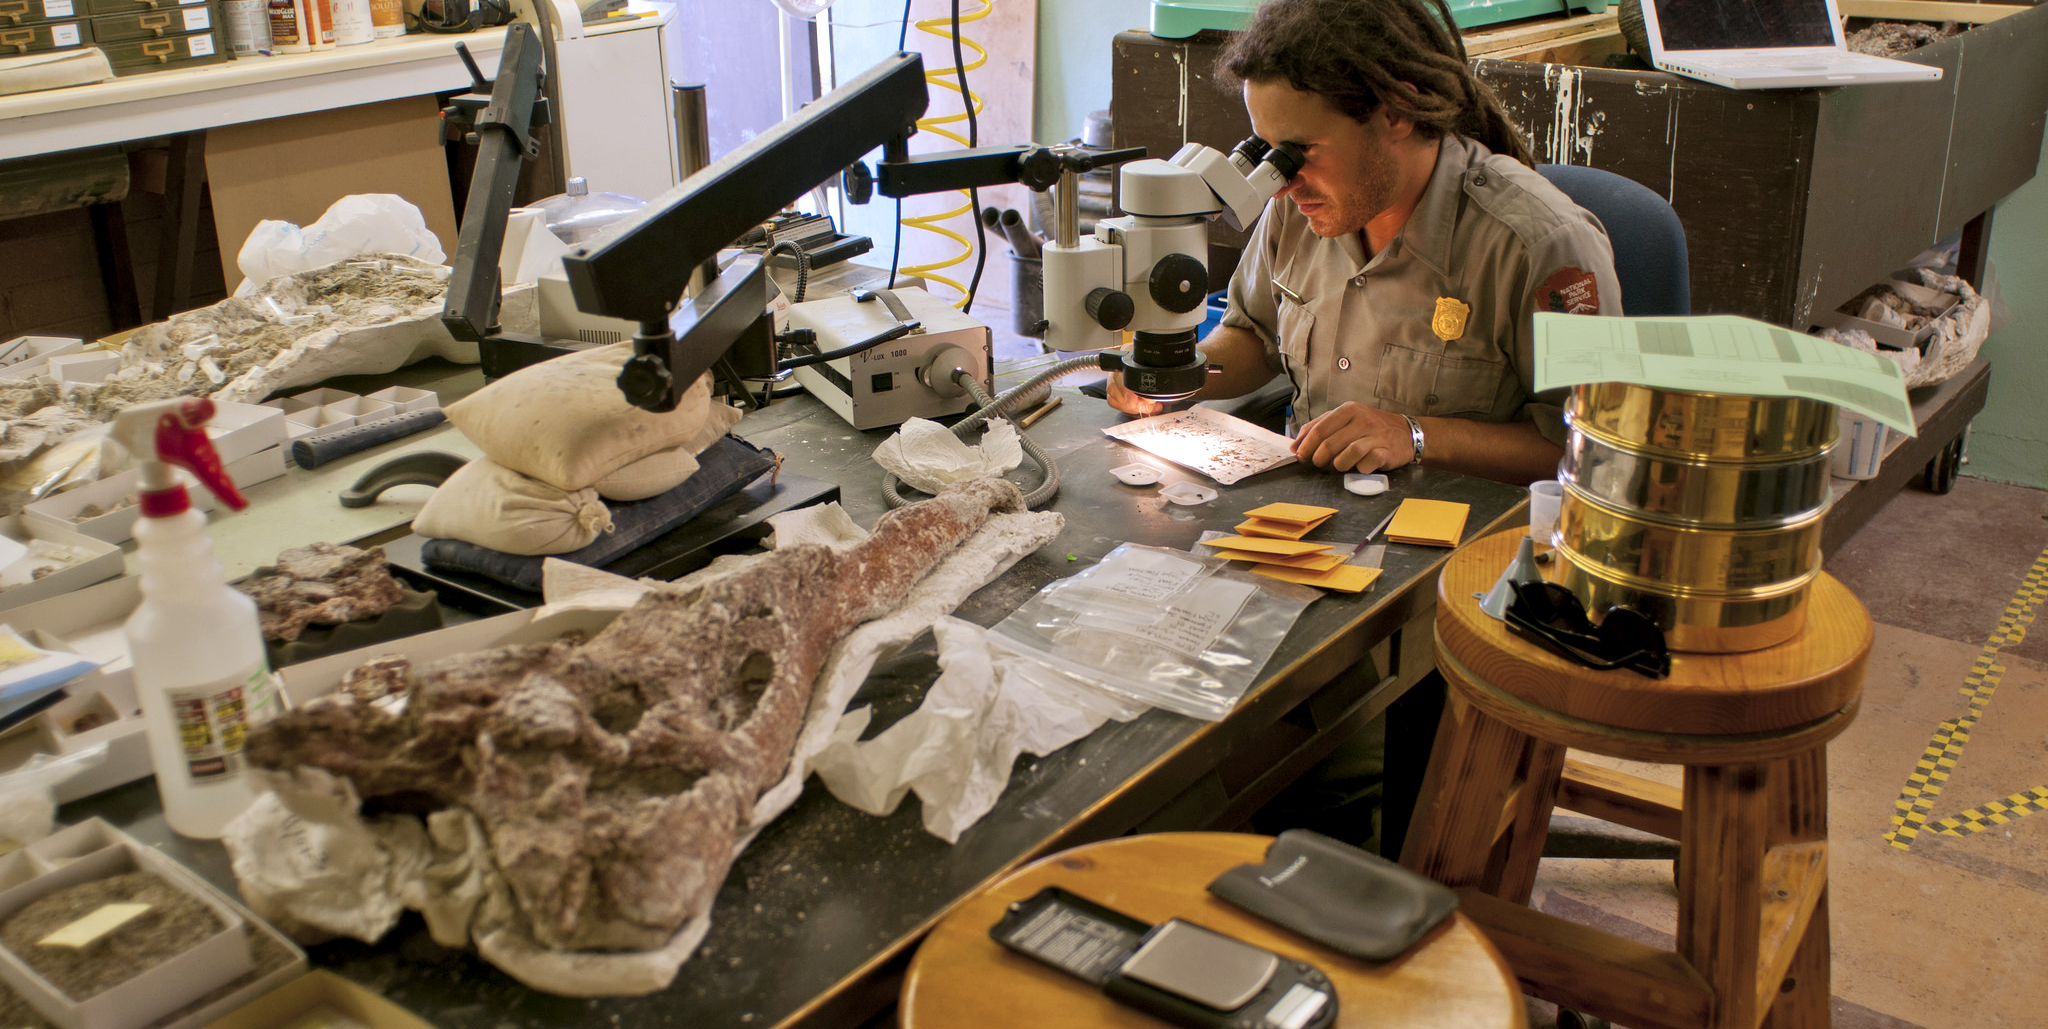 researcher looks into microscope in room full of fossils